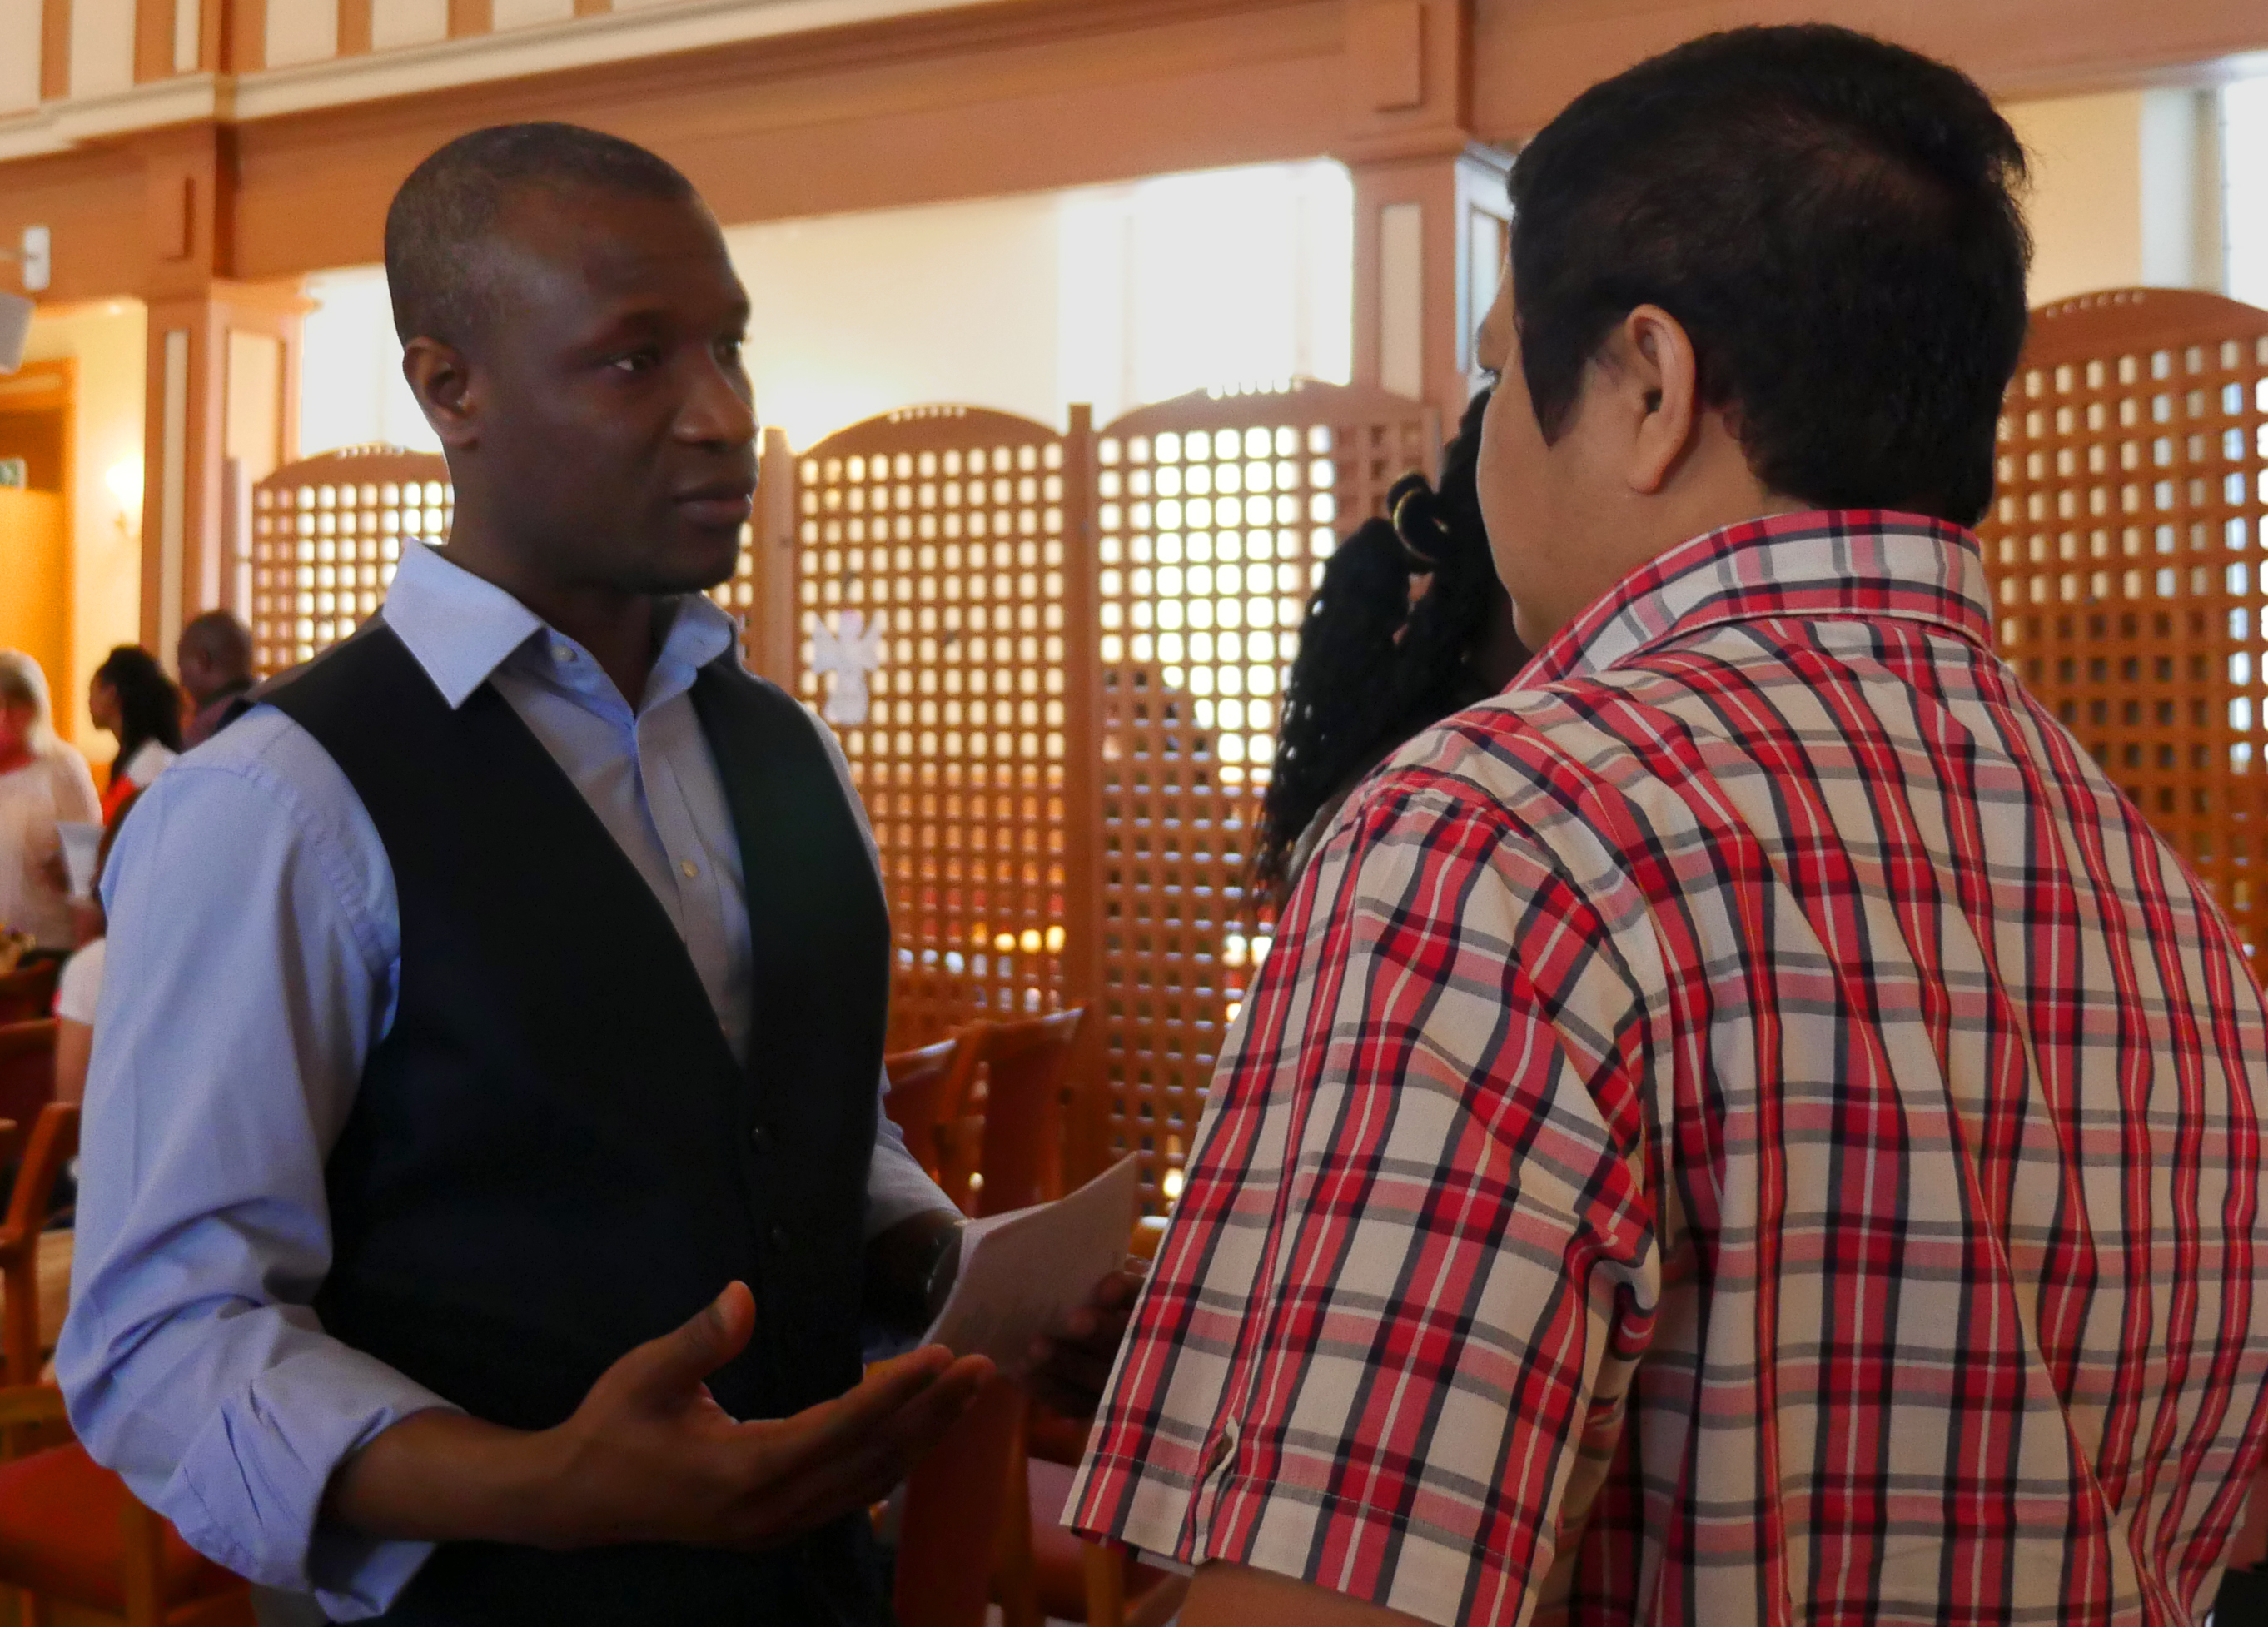 Victor Sekyere, one of the earliest members of International Methodist Church Oslo, talks to a fellow parishioner after worship. Sekyere, originally from Ghana, will be commissioned in June as a provisional elder in the Norway Annual Conference. Photo by Heather Hahn, UMNS